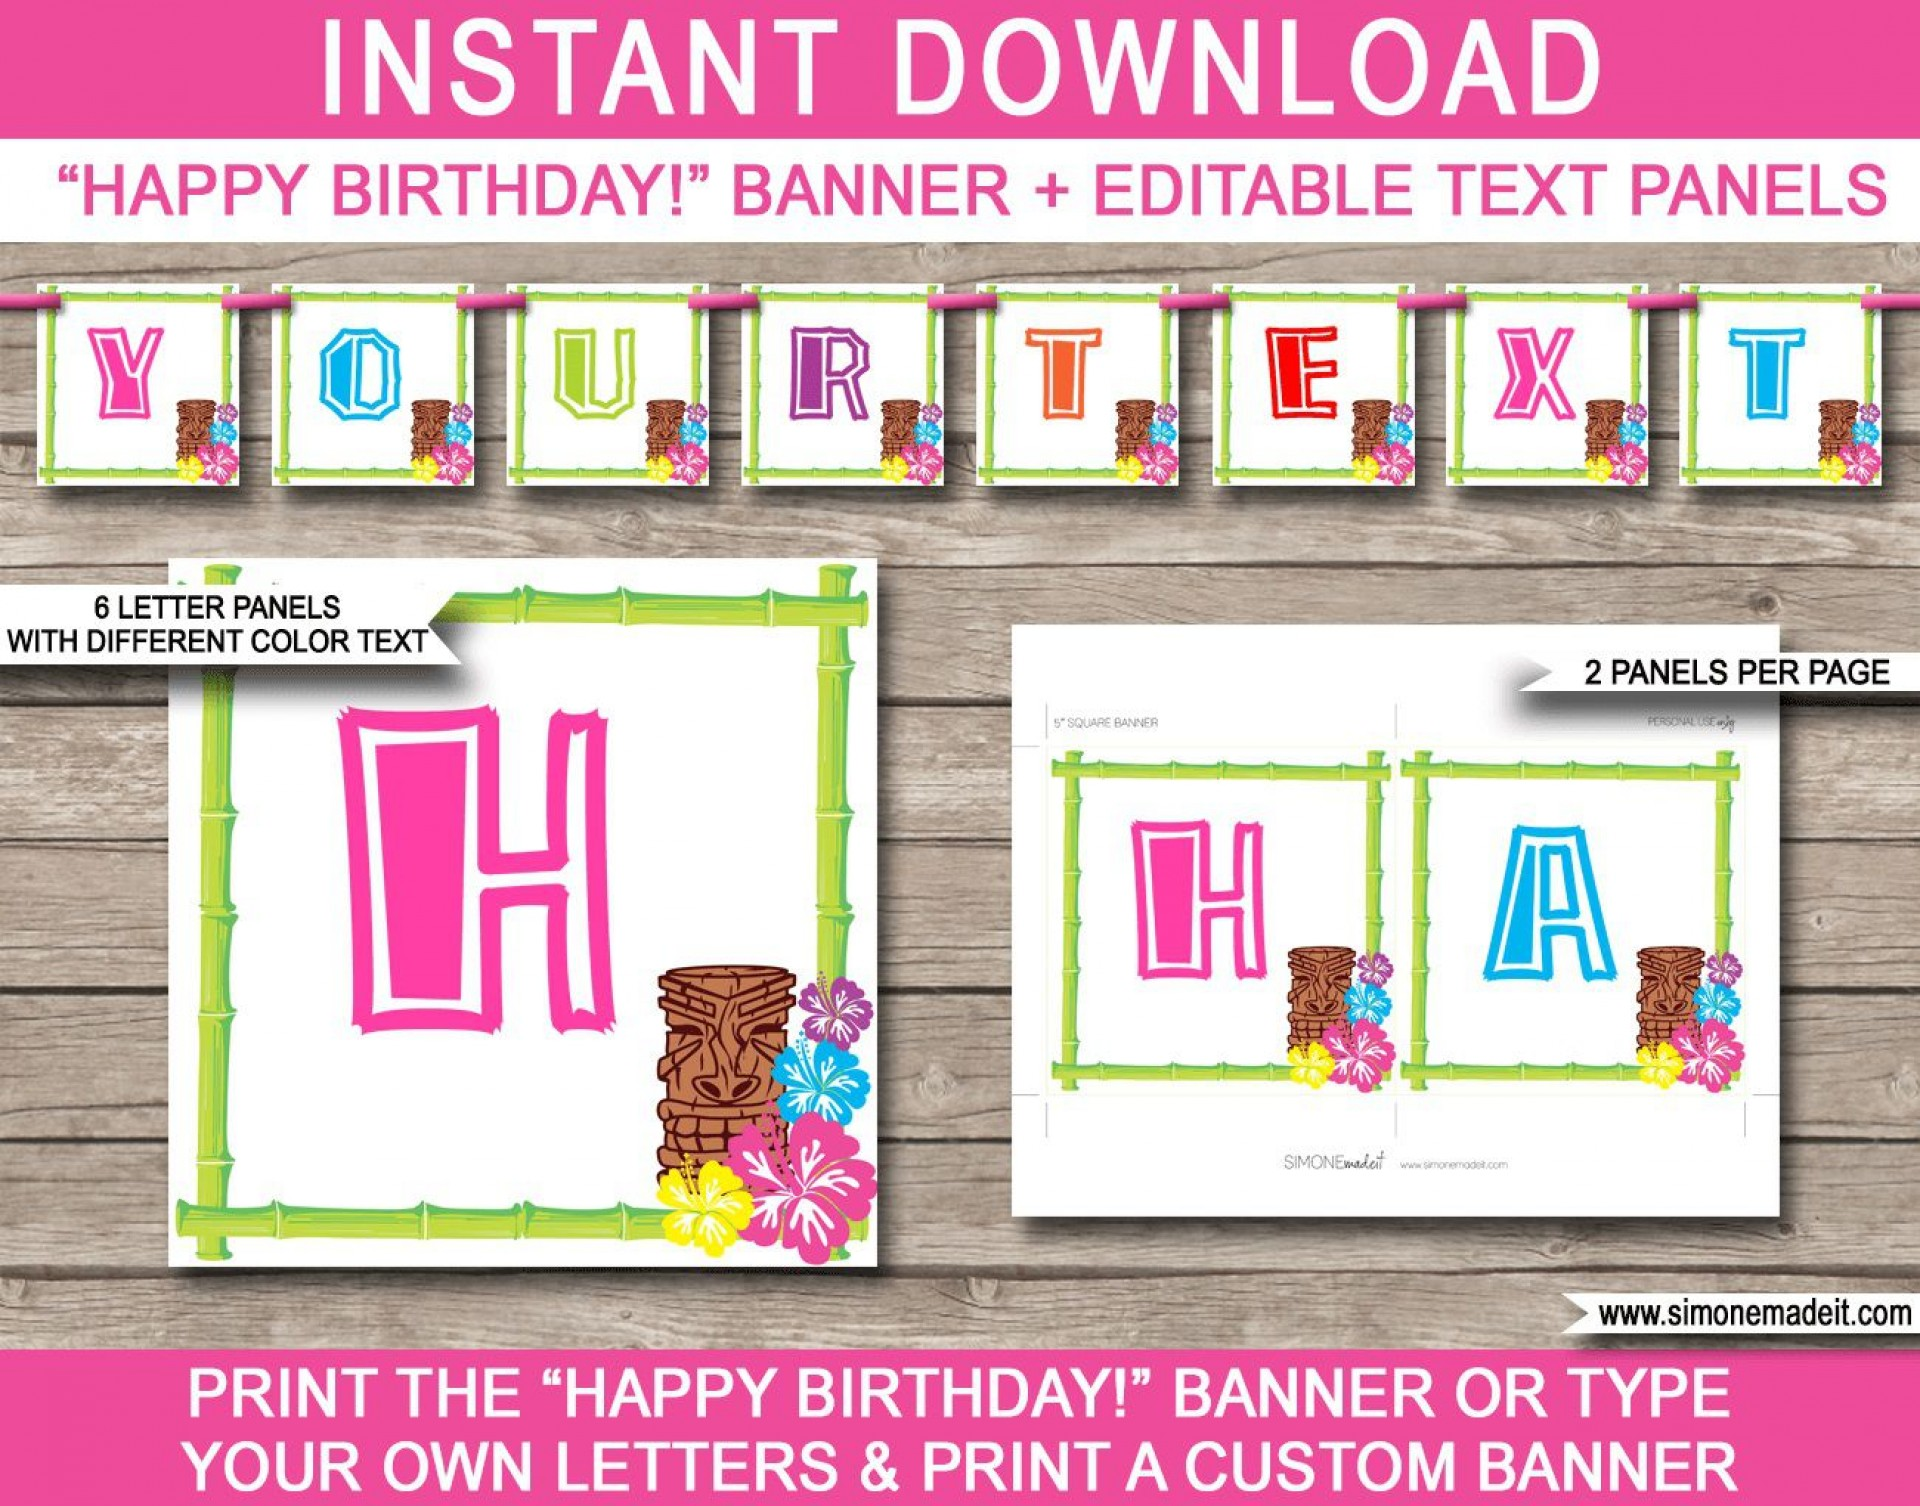 Happy Birthday Banner Template Addictionary